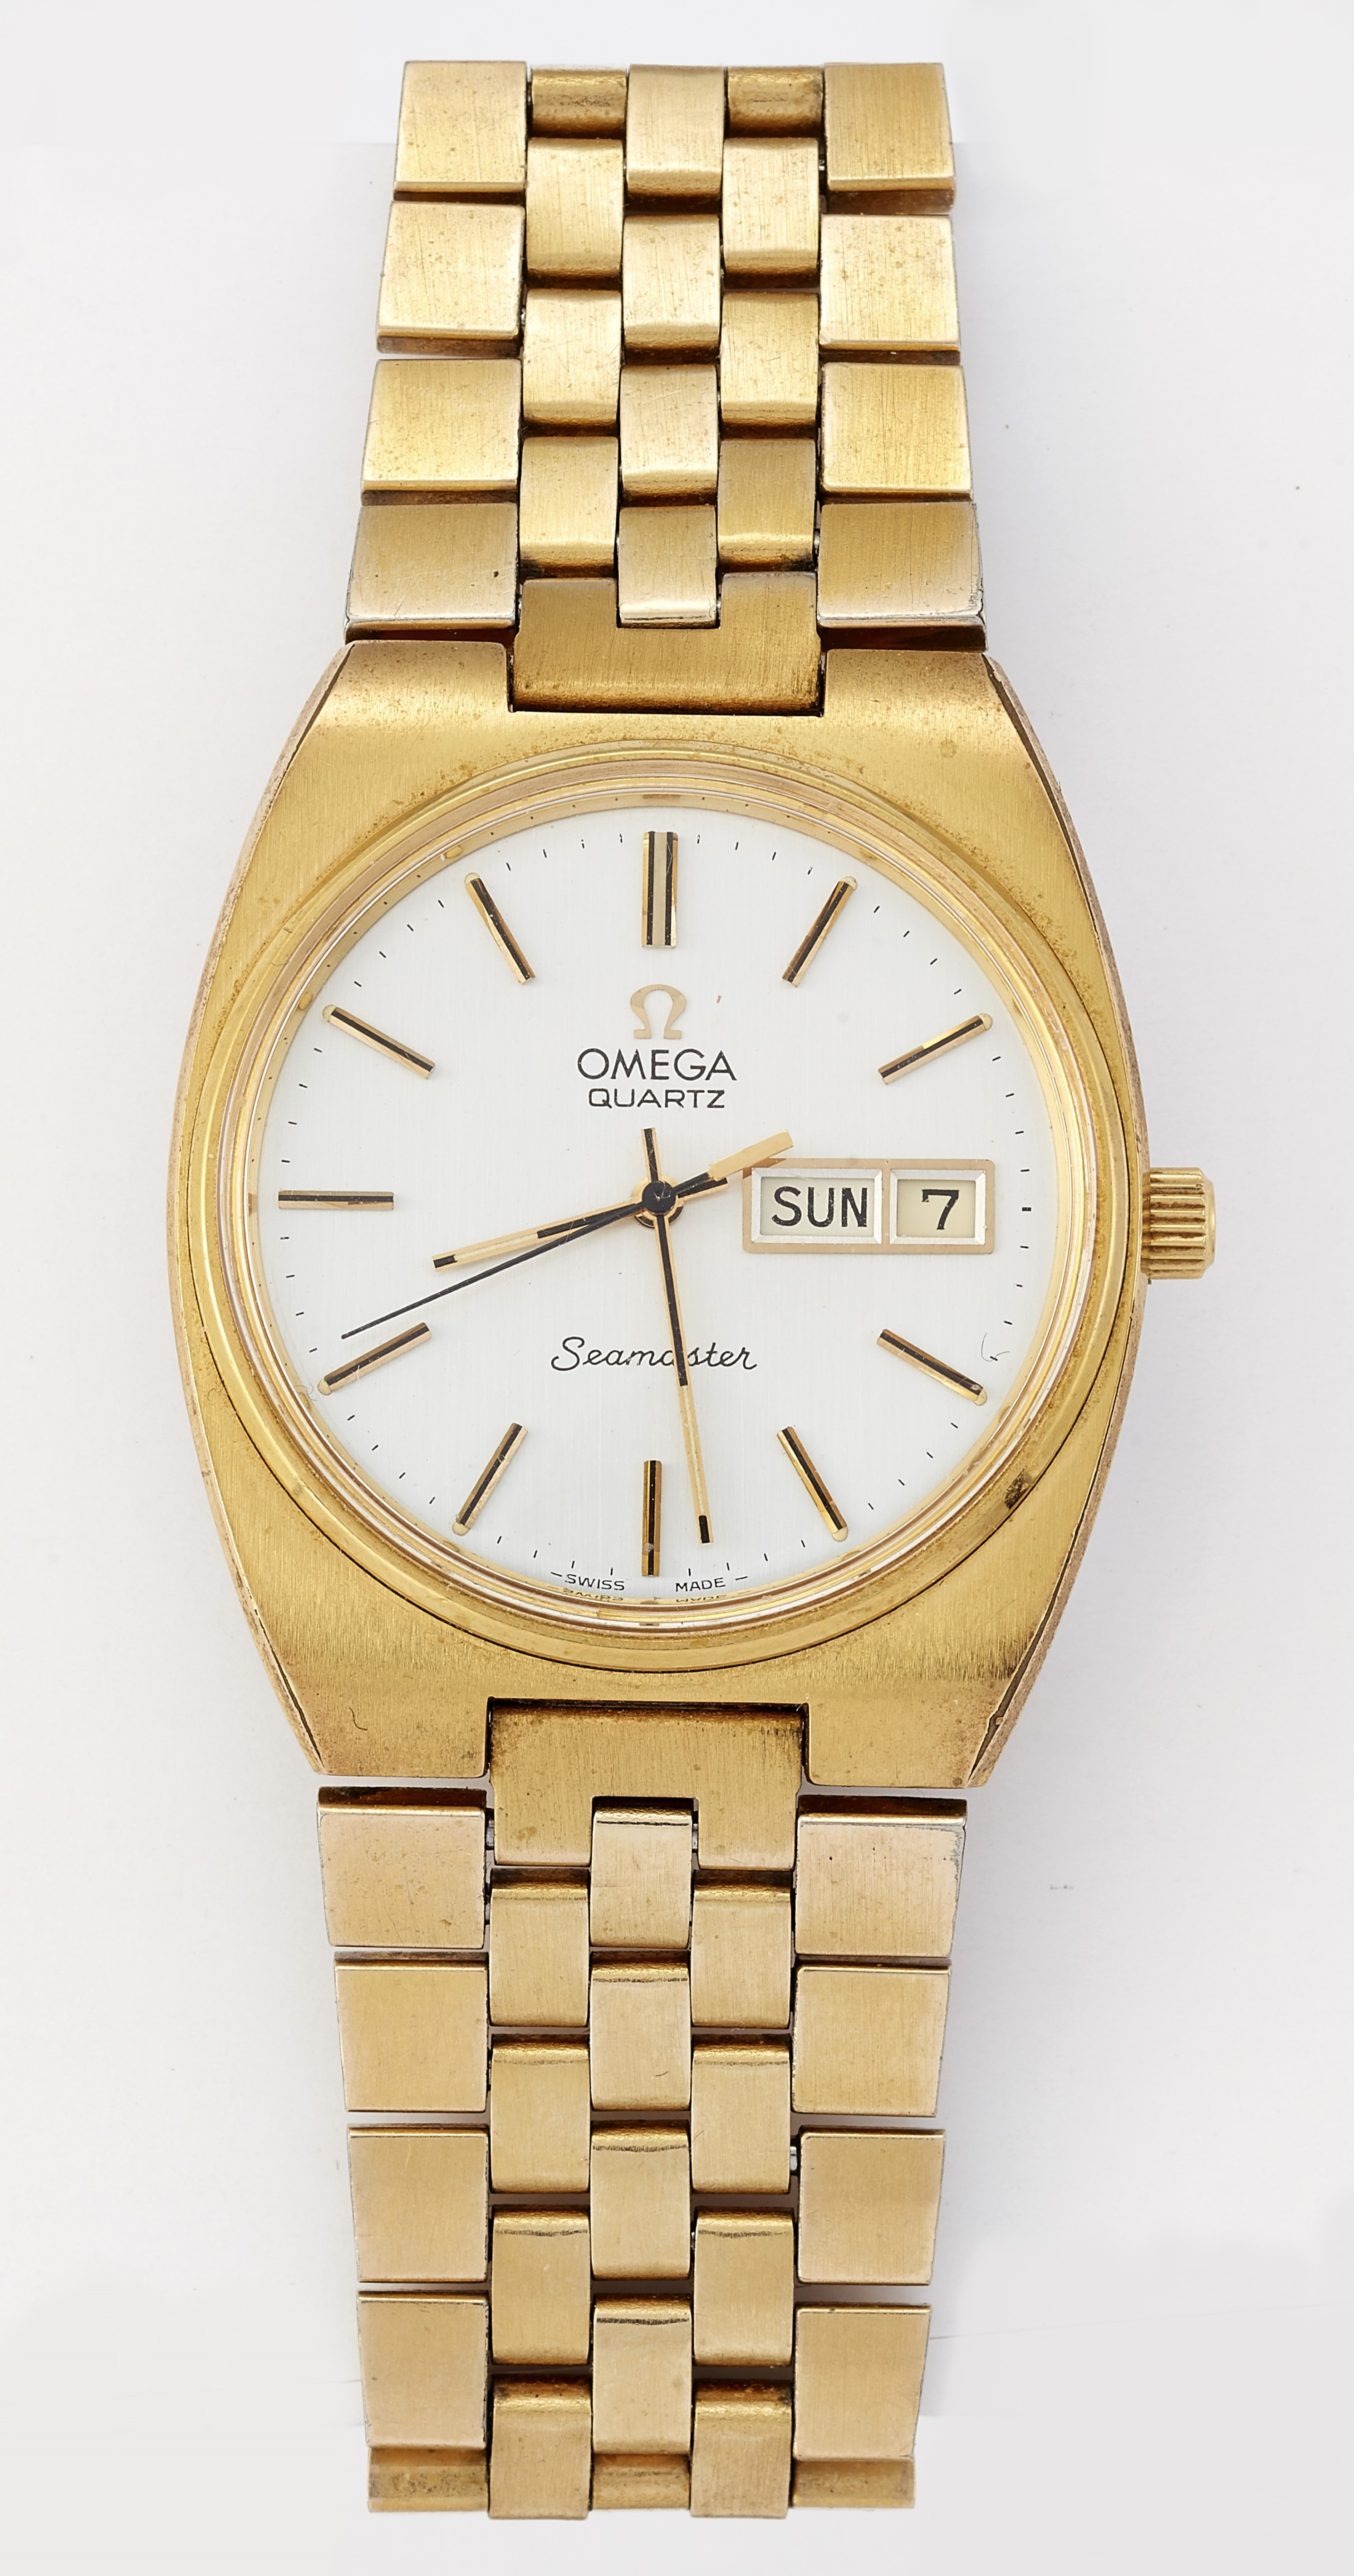 A GENTS GOLD PLATED OMEGA SEAMASTER QUARTZ WATCH